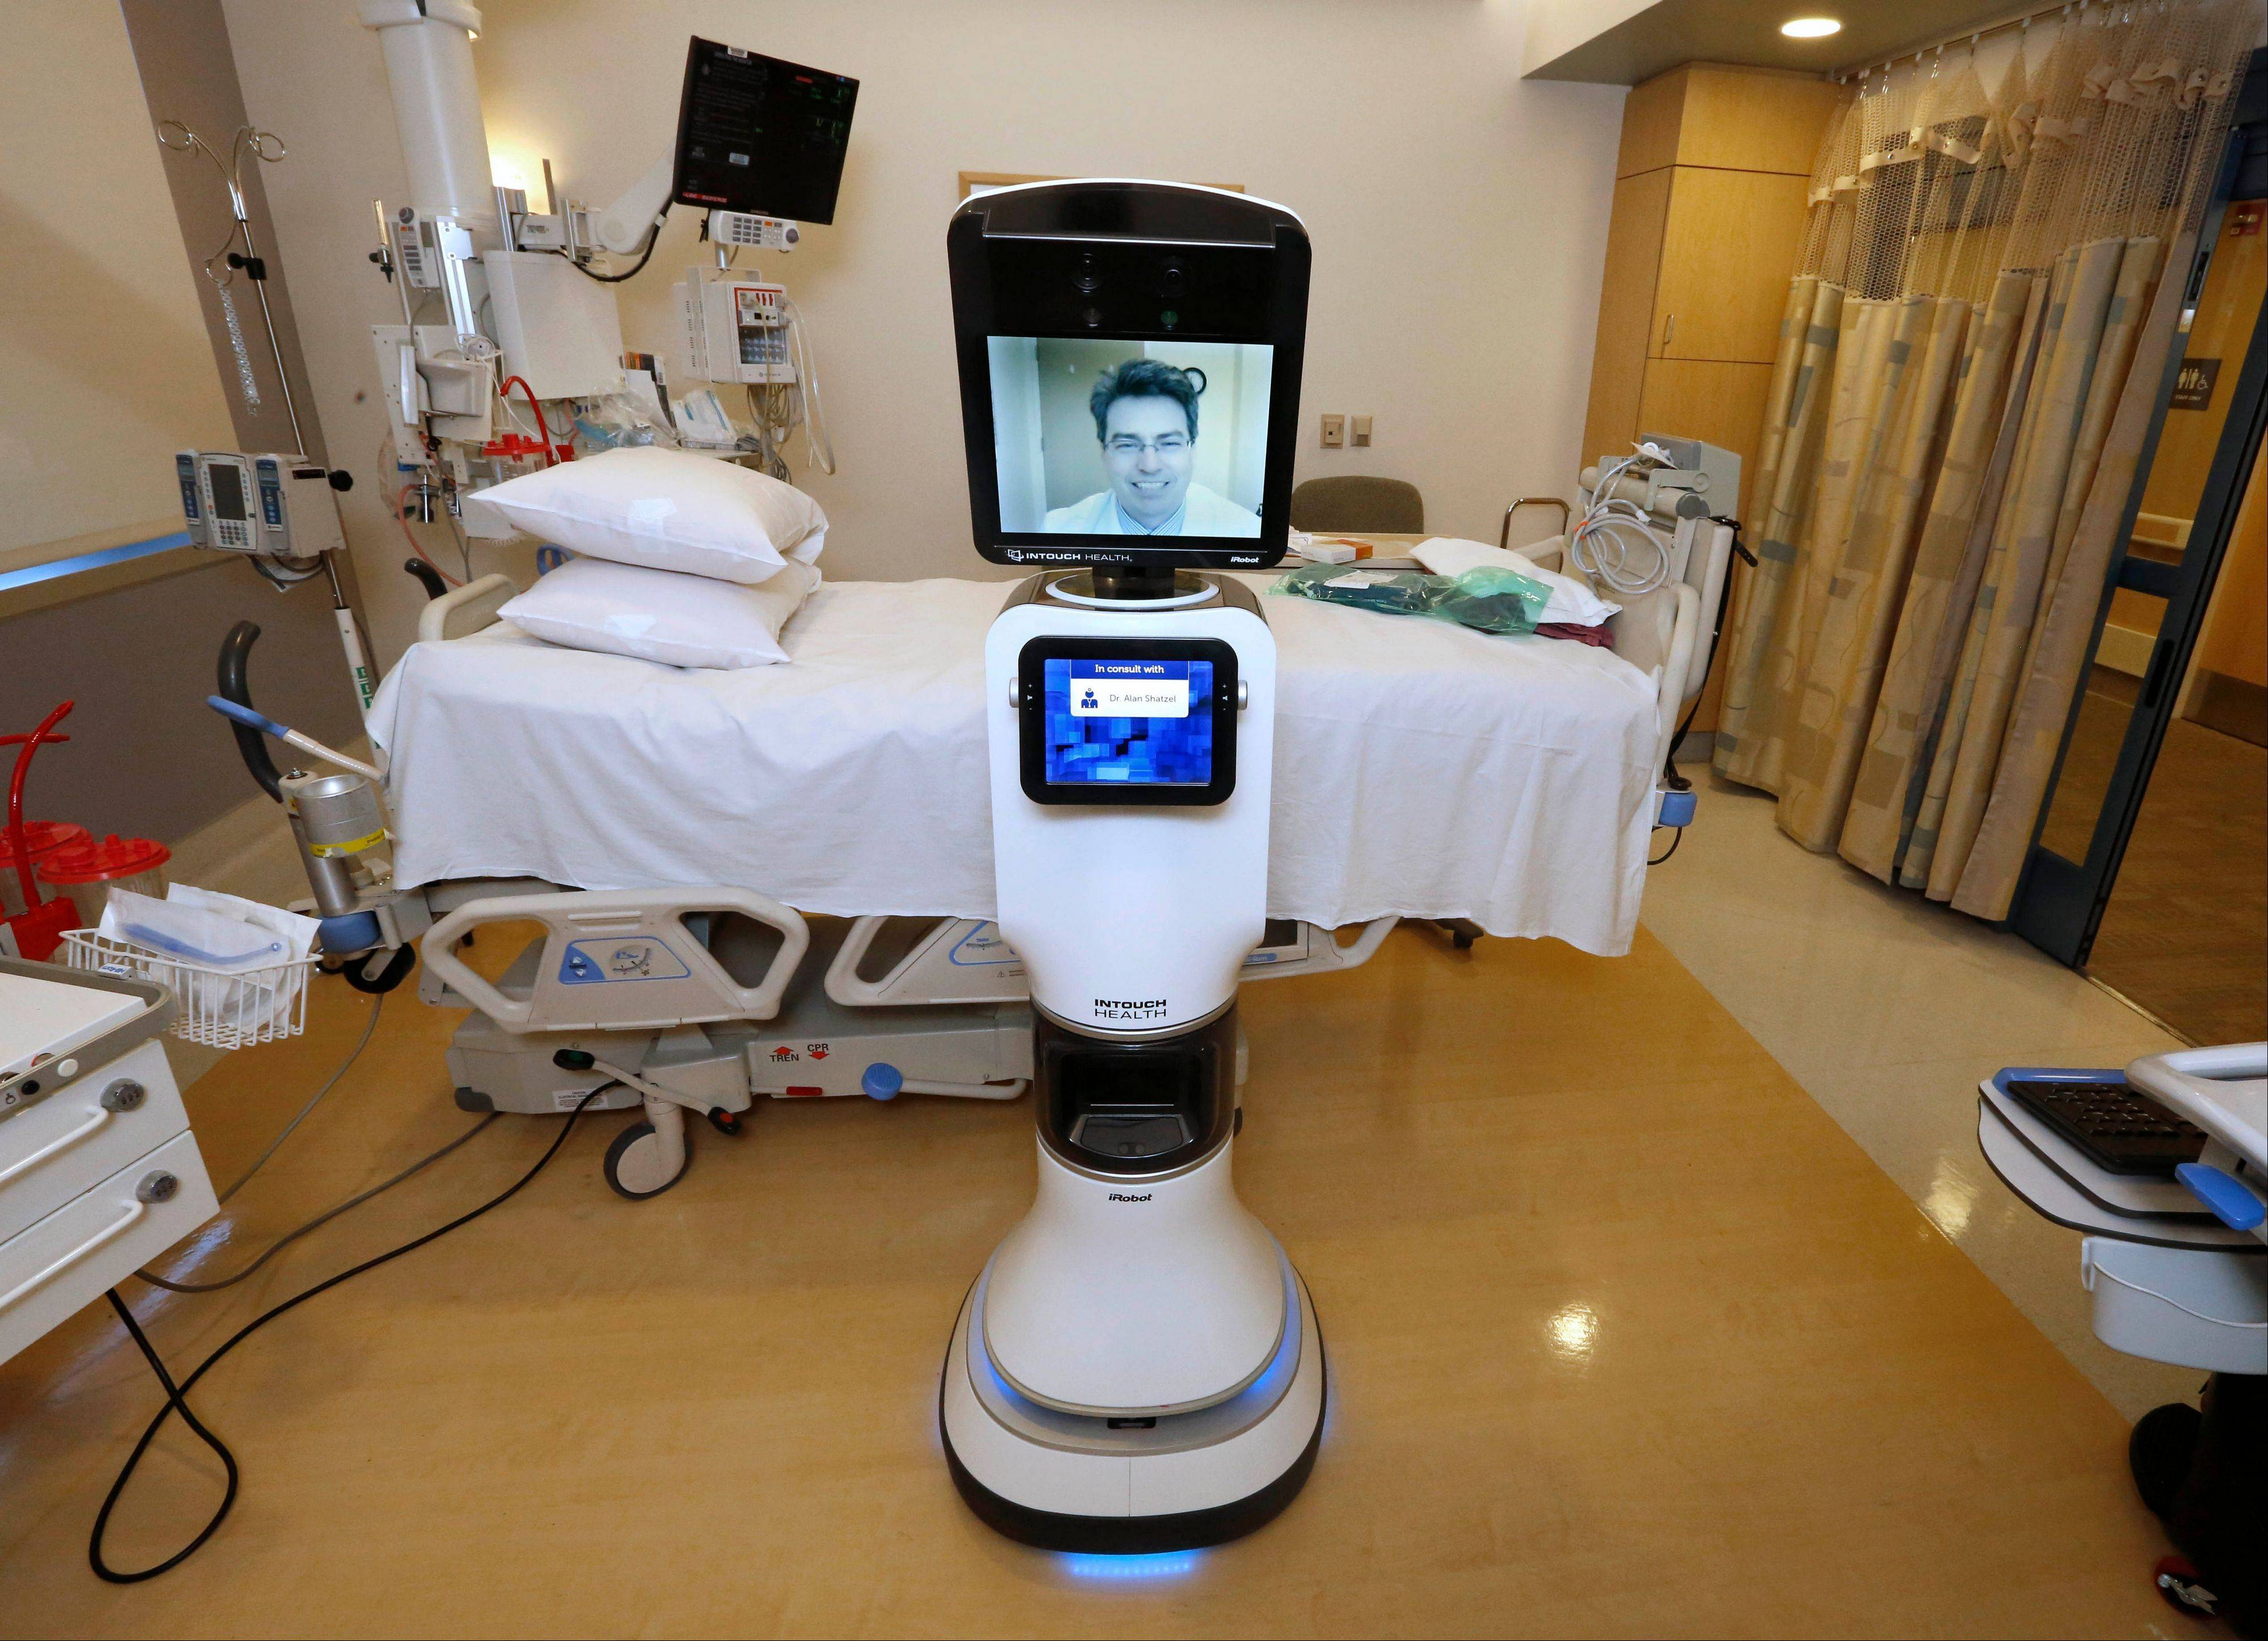 Dr. Alan Shatzel, medical director of the Mercy Telehealth Network, is displayed on the monitor RP-VITA robot at Mercy San Juan Hospital in Carmichael, Calif. The robots enable physicians to have a different bedside presence as they �beam� themselves into hospitals to diagnose patients and offer medical advice during emergencies.